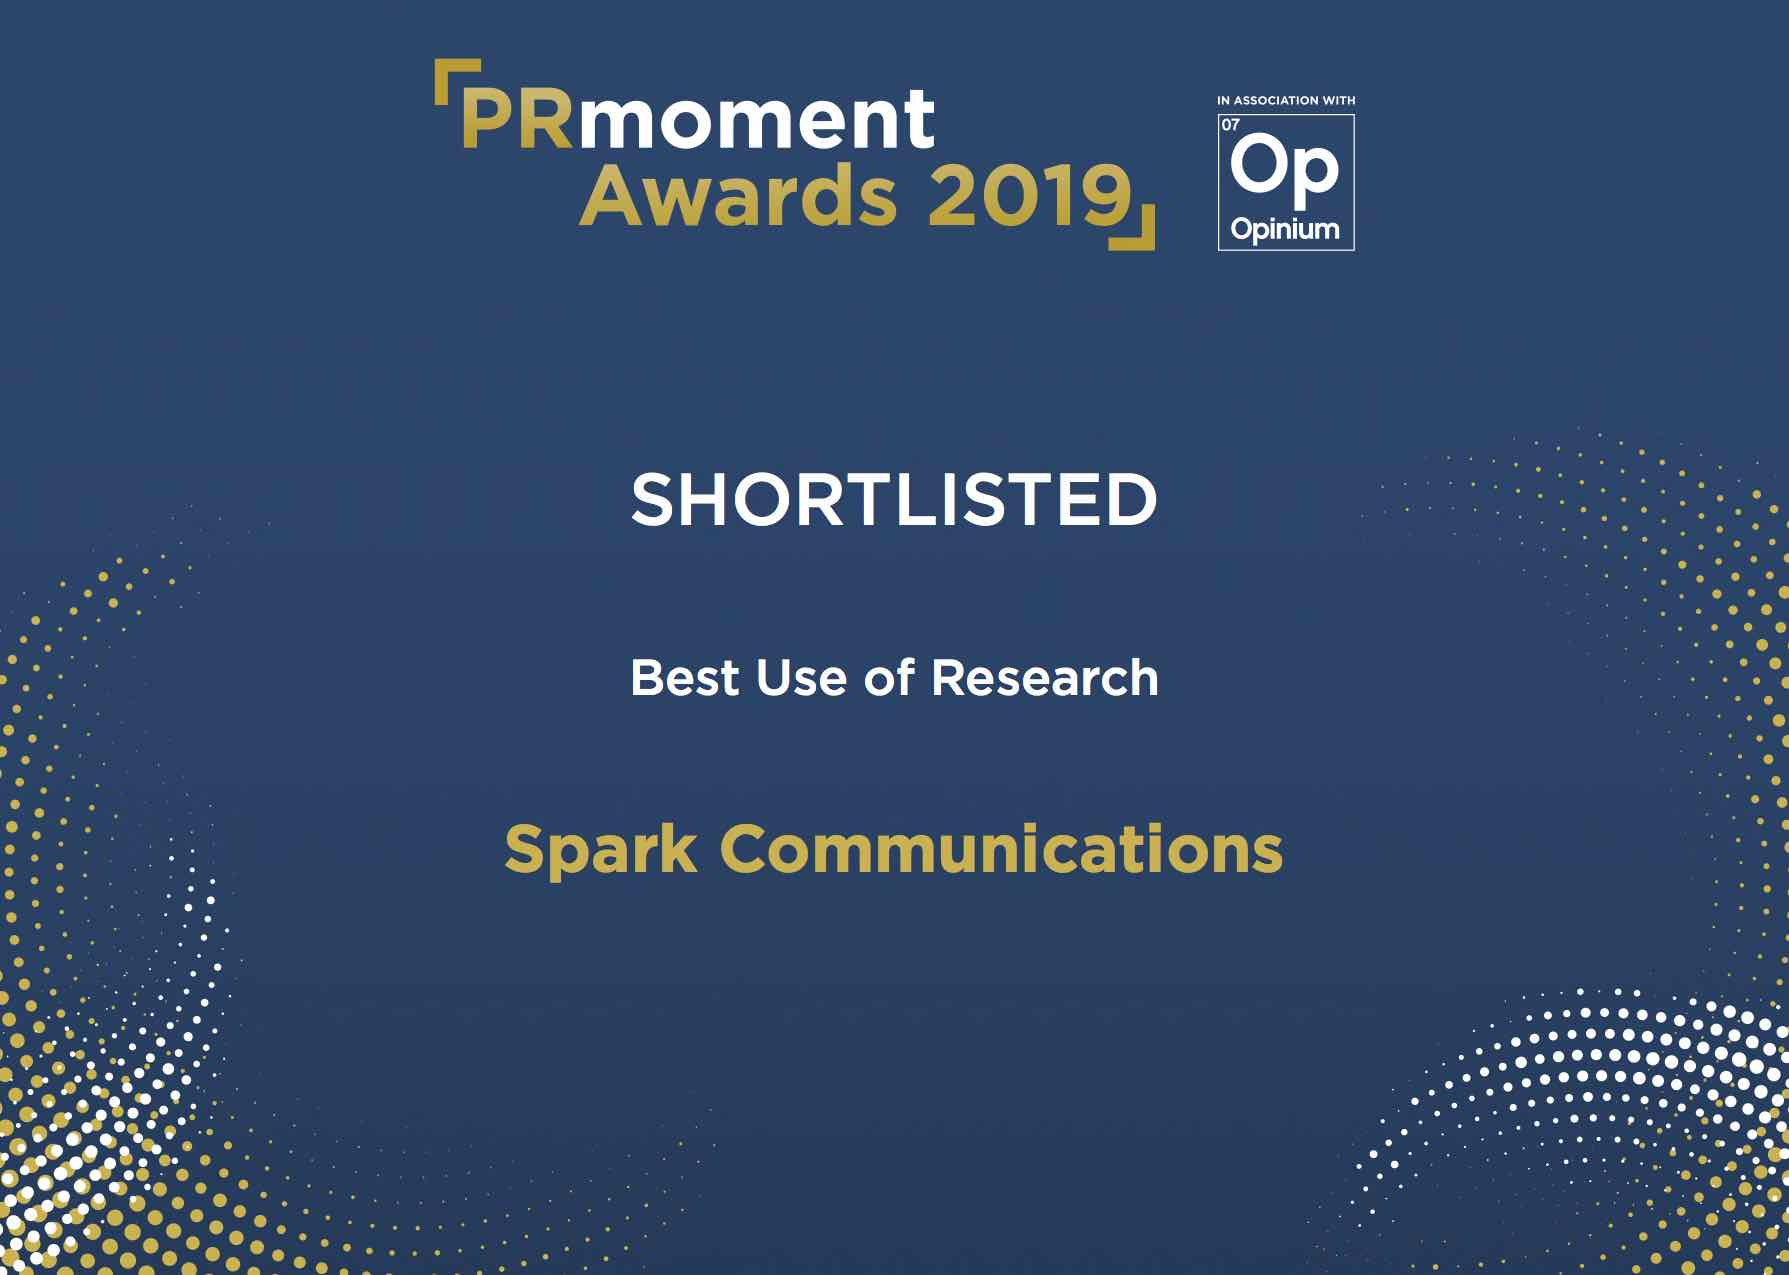 Shortlisted in the PRmoment Awards 2019